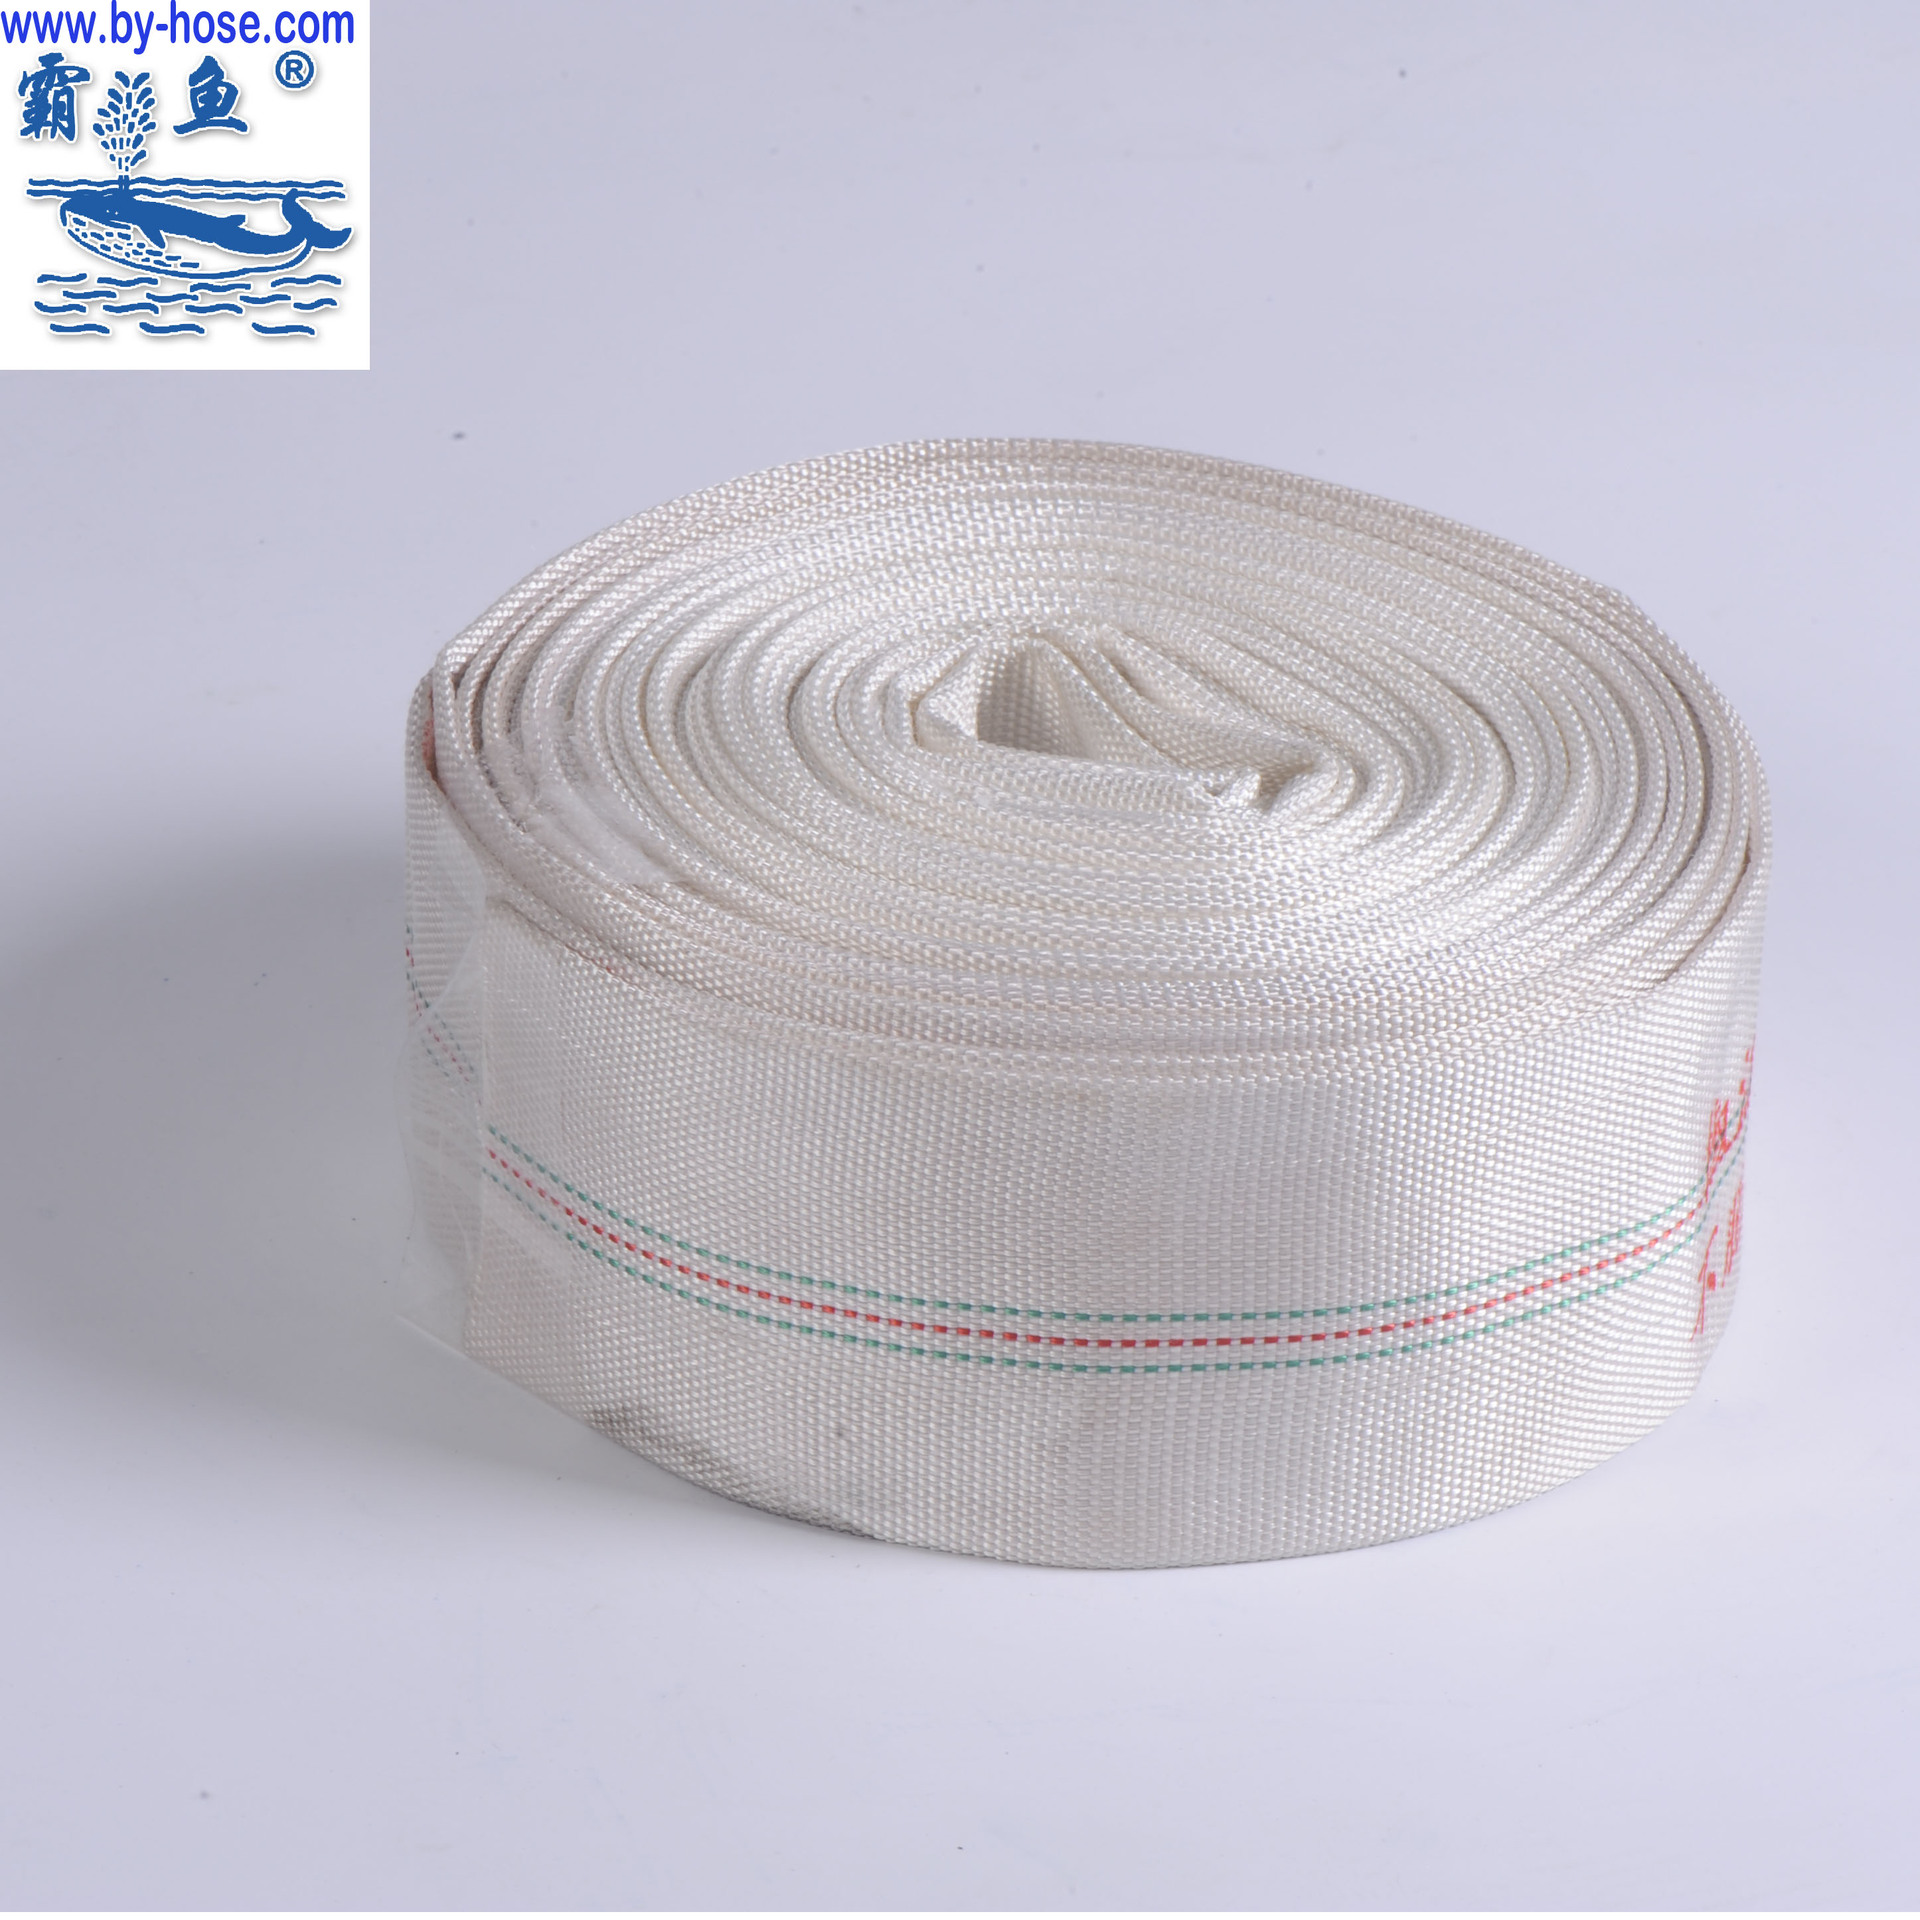 1-12 inch PVC fire hose high pressure lining tape, agricultural irrigation canvas fire belt